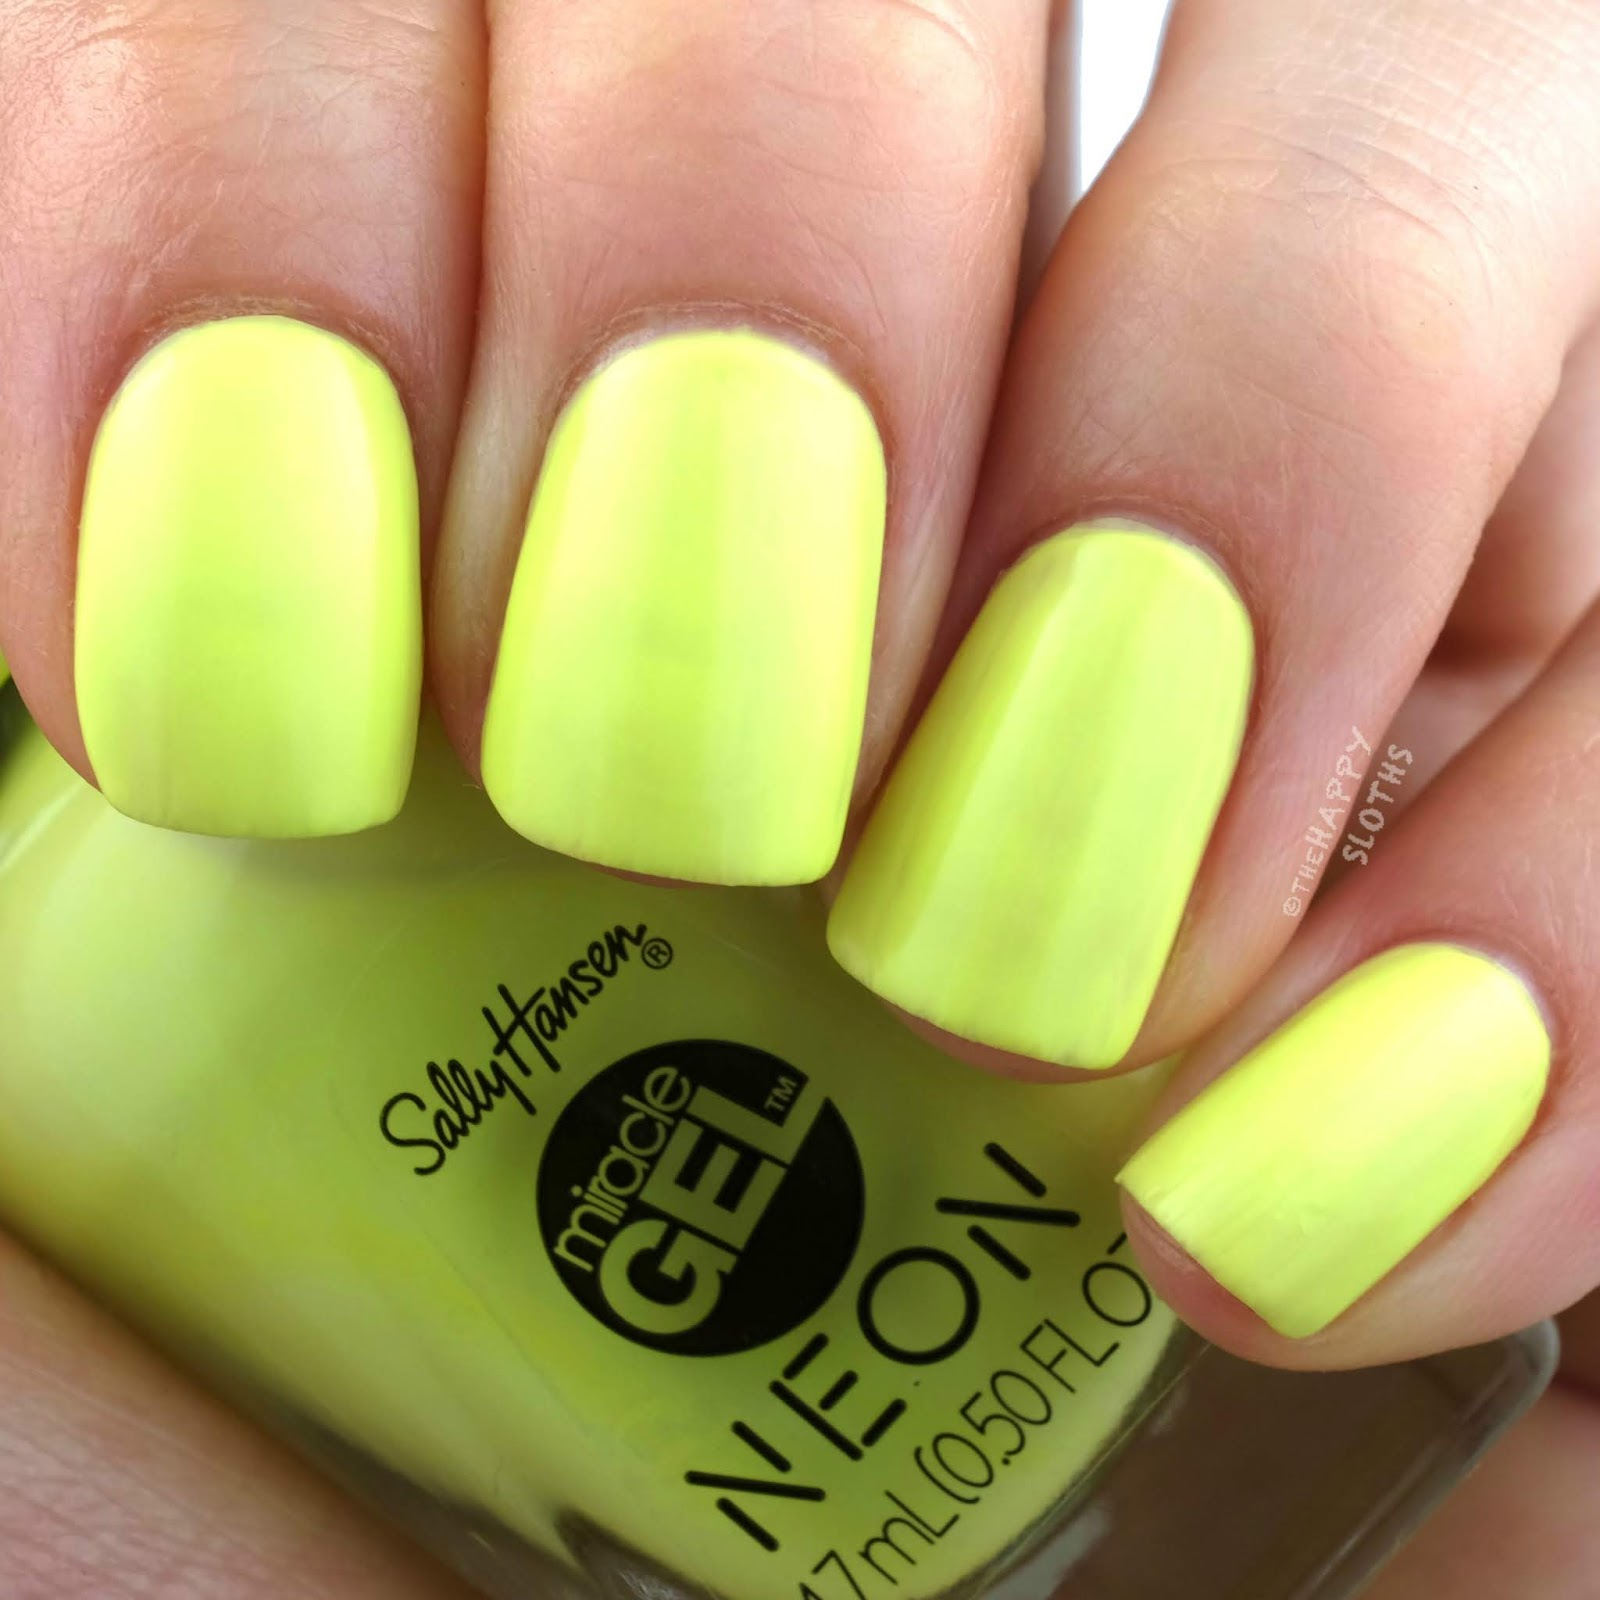 Sally Hansen | Miracle Gel Summer 2019 Neon Collection | Lemon-chillo: Review and Swatches